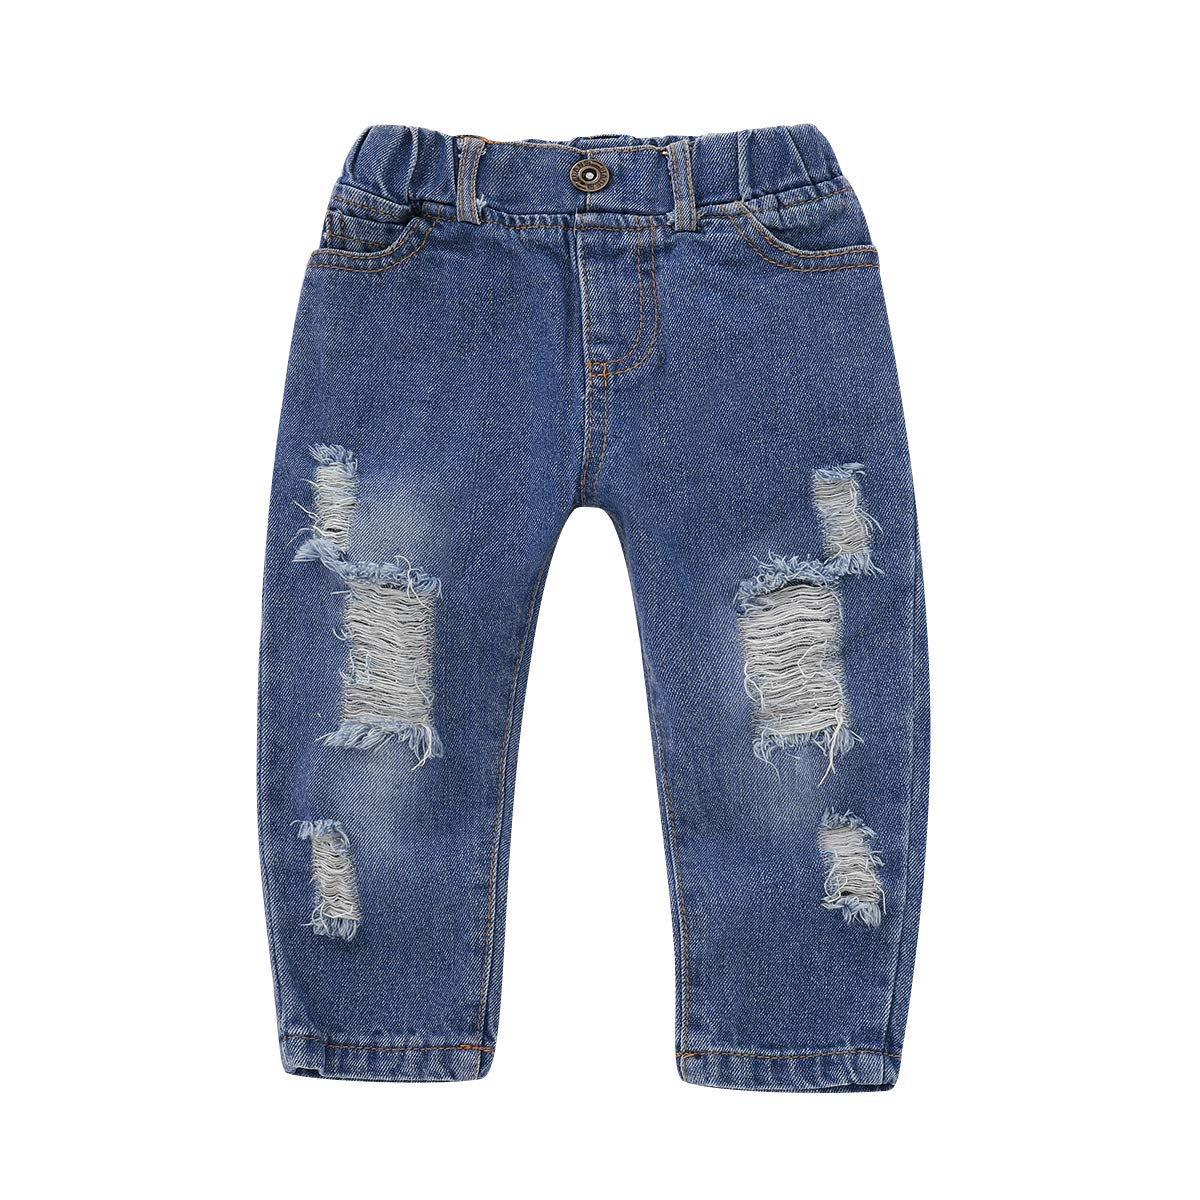 Ripped Jeans Denim Pants for Girls 1-4T 2Psc Outfits Set Floral Print Ruffle Short Sleeve Tops Toddler Baby Girl Clothes